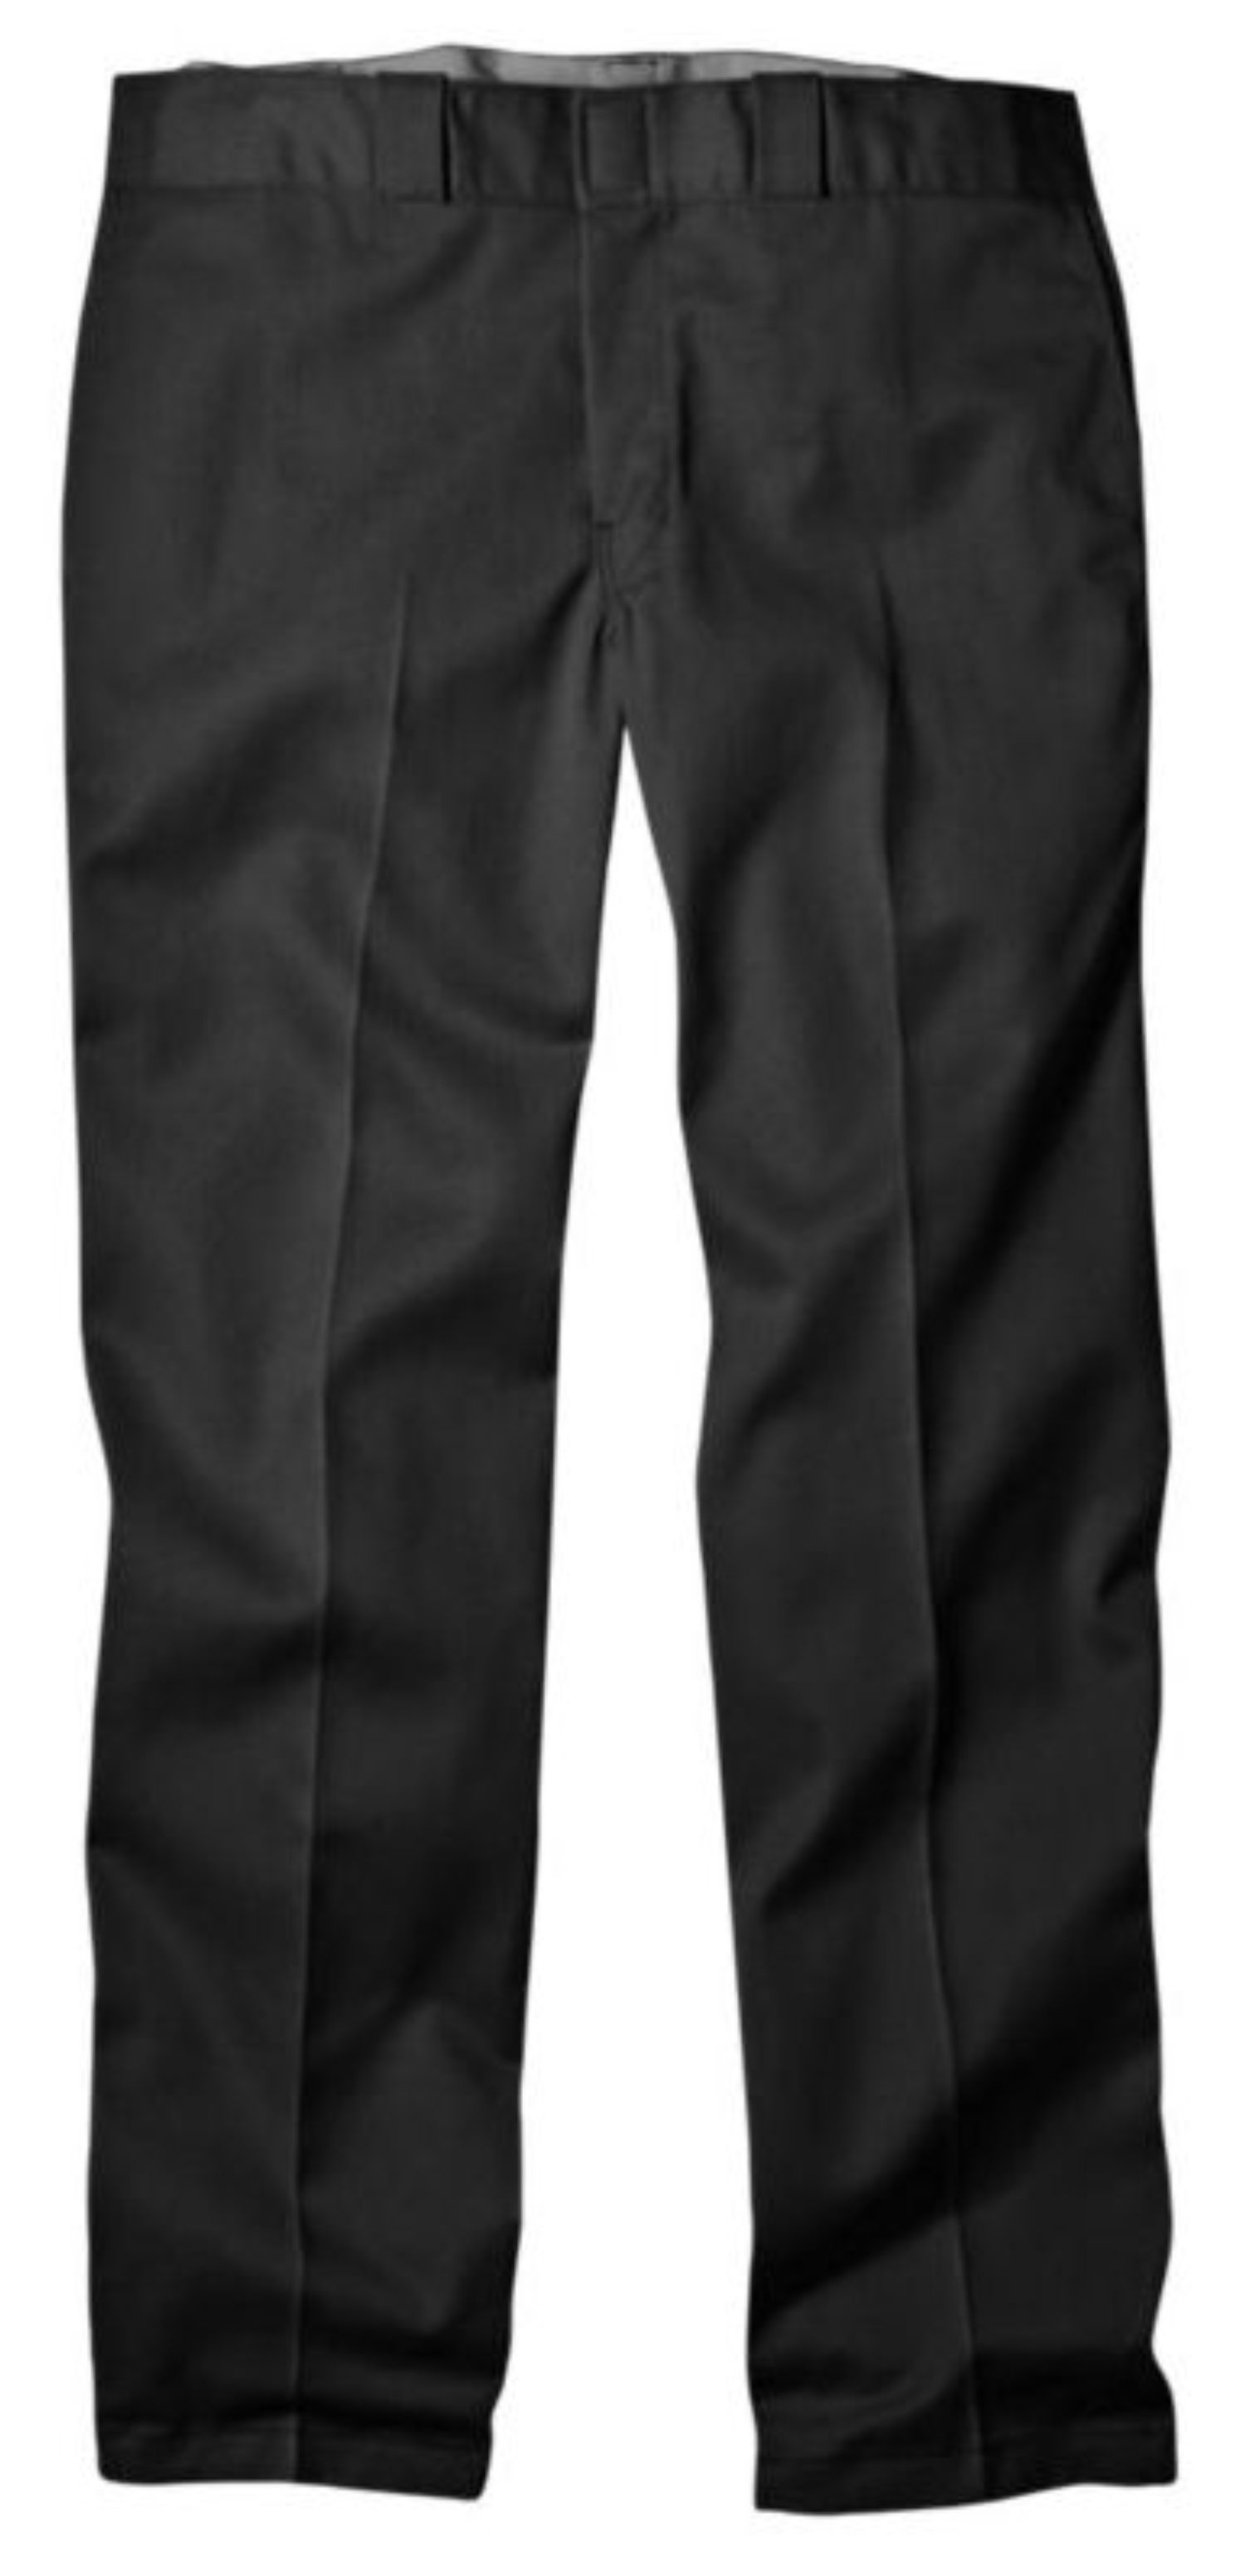 Dickies Men's Original 874 Work Pant Black 33W x 30L